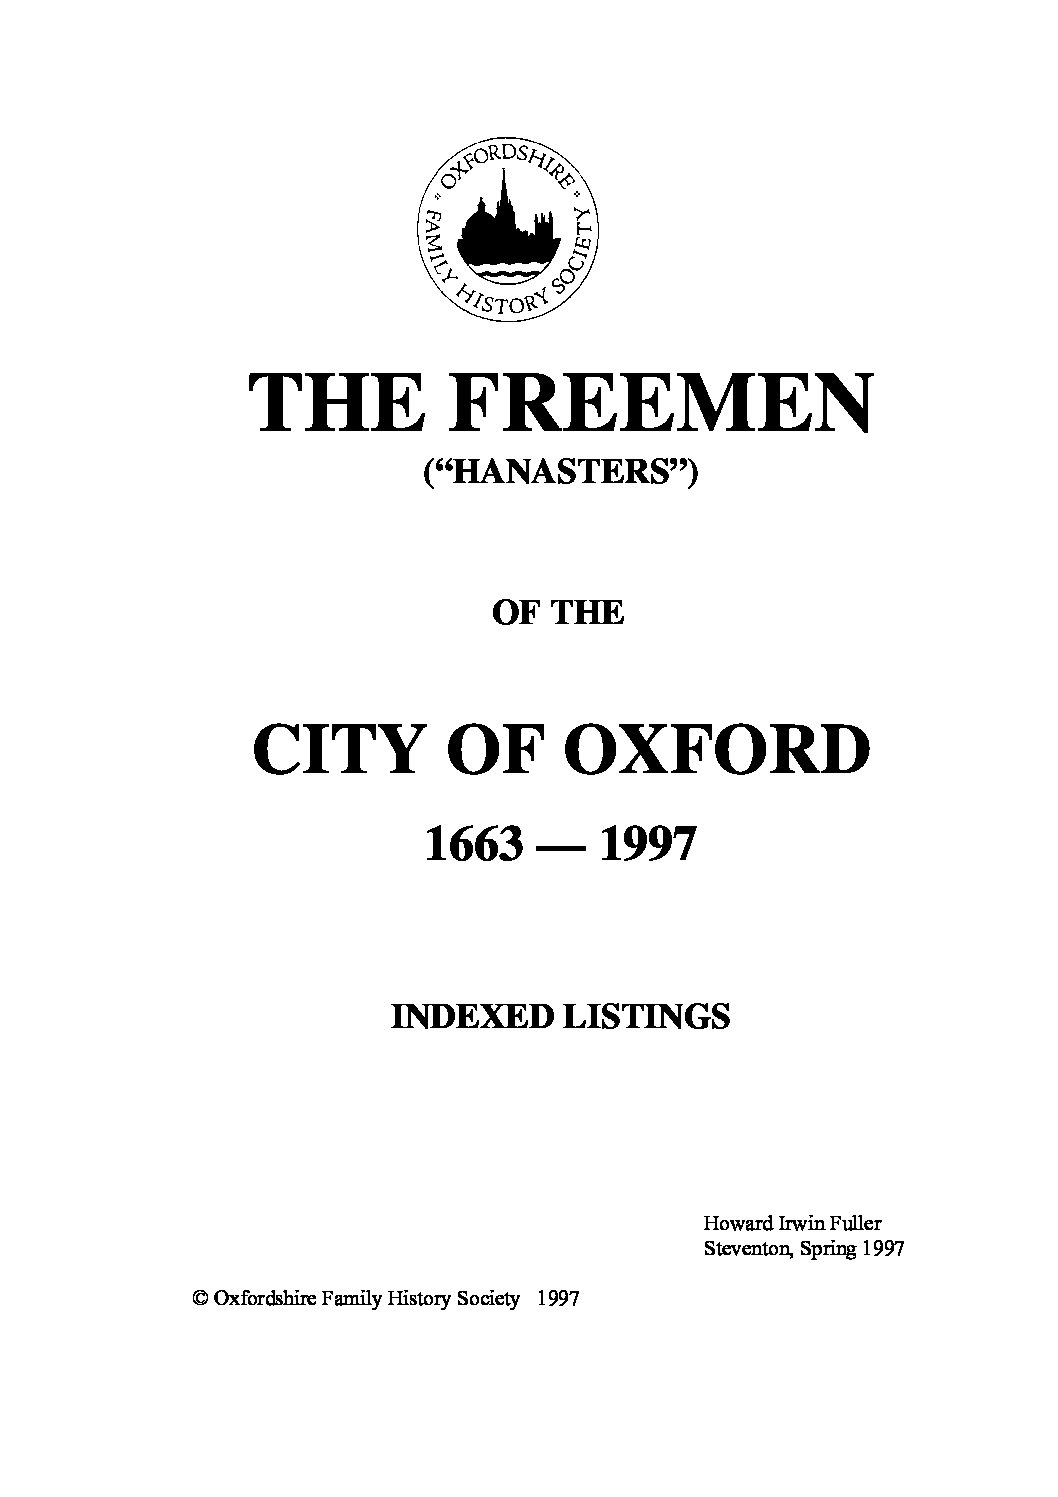 The Freemen of the City of Oxford (1663-1997) Indexed Listings